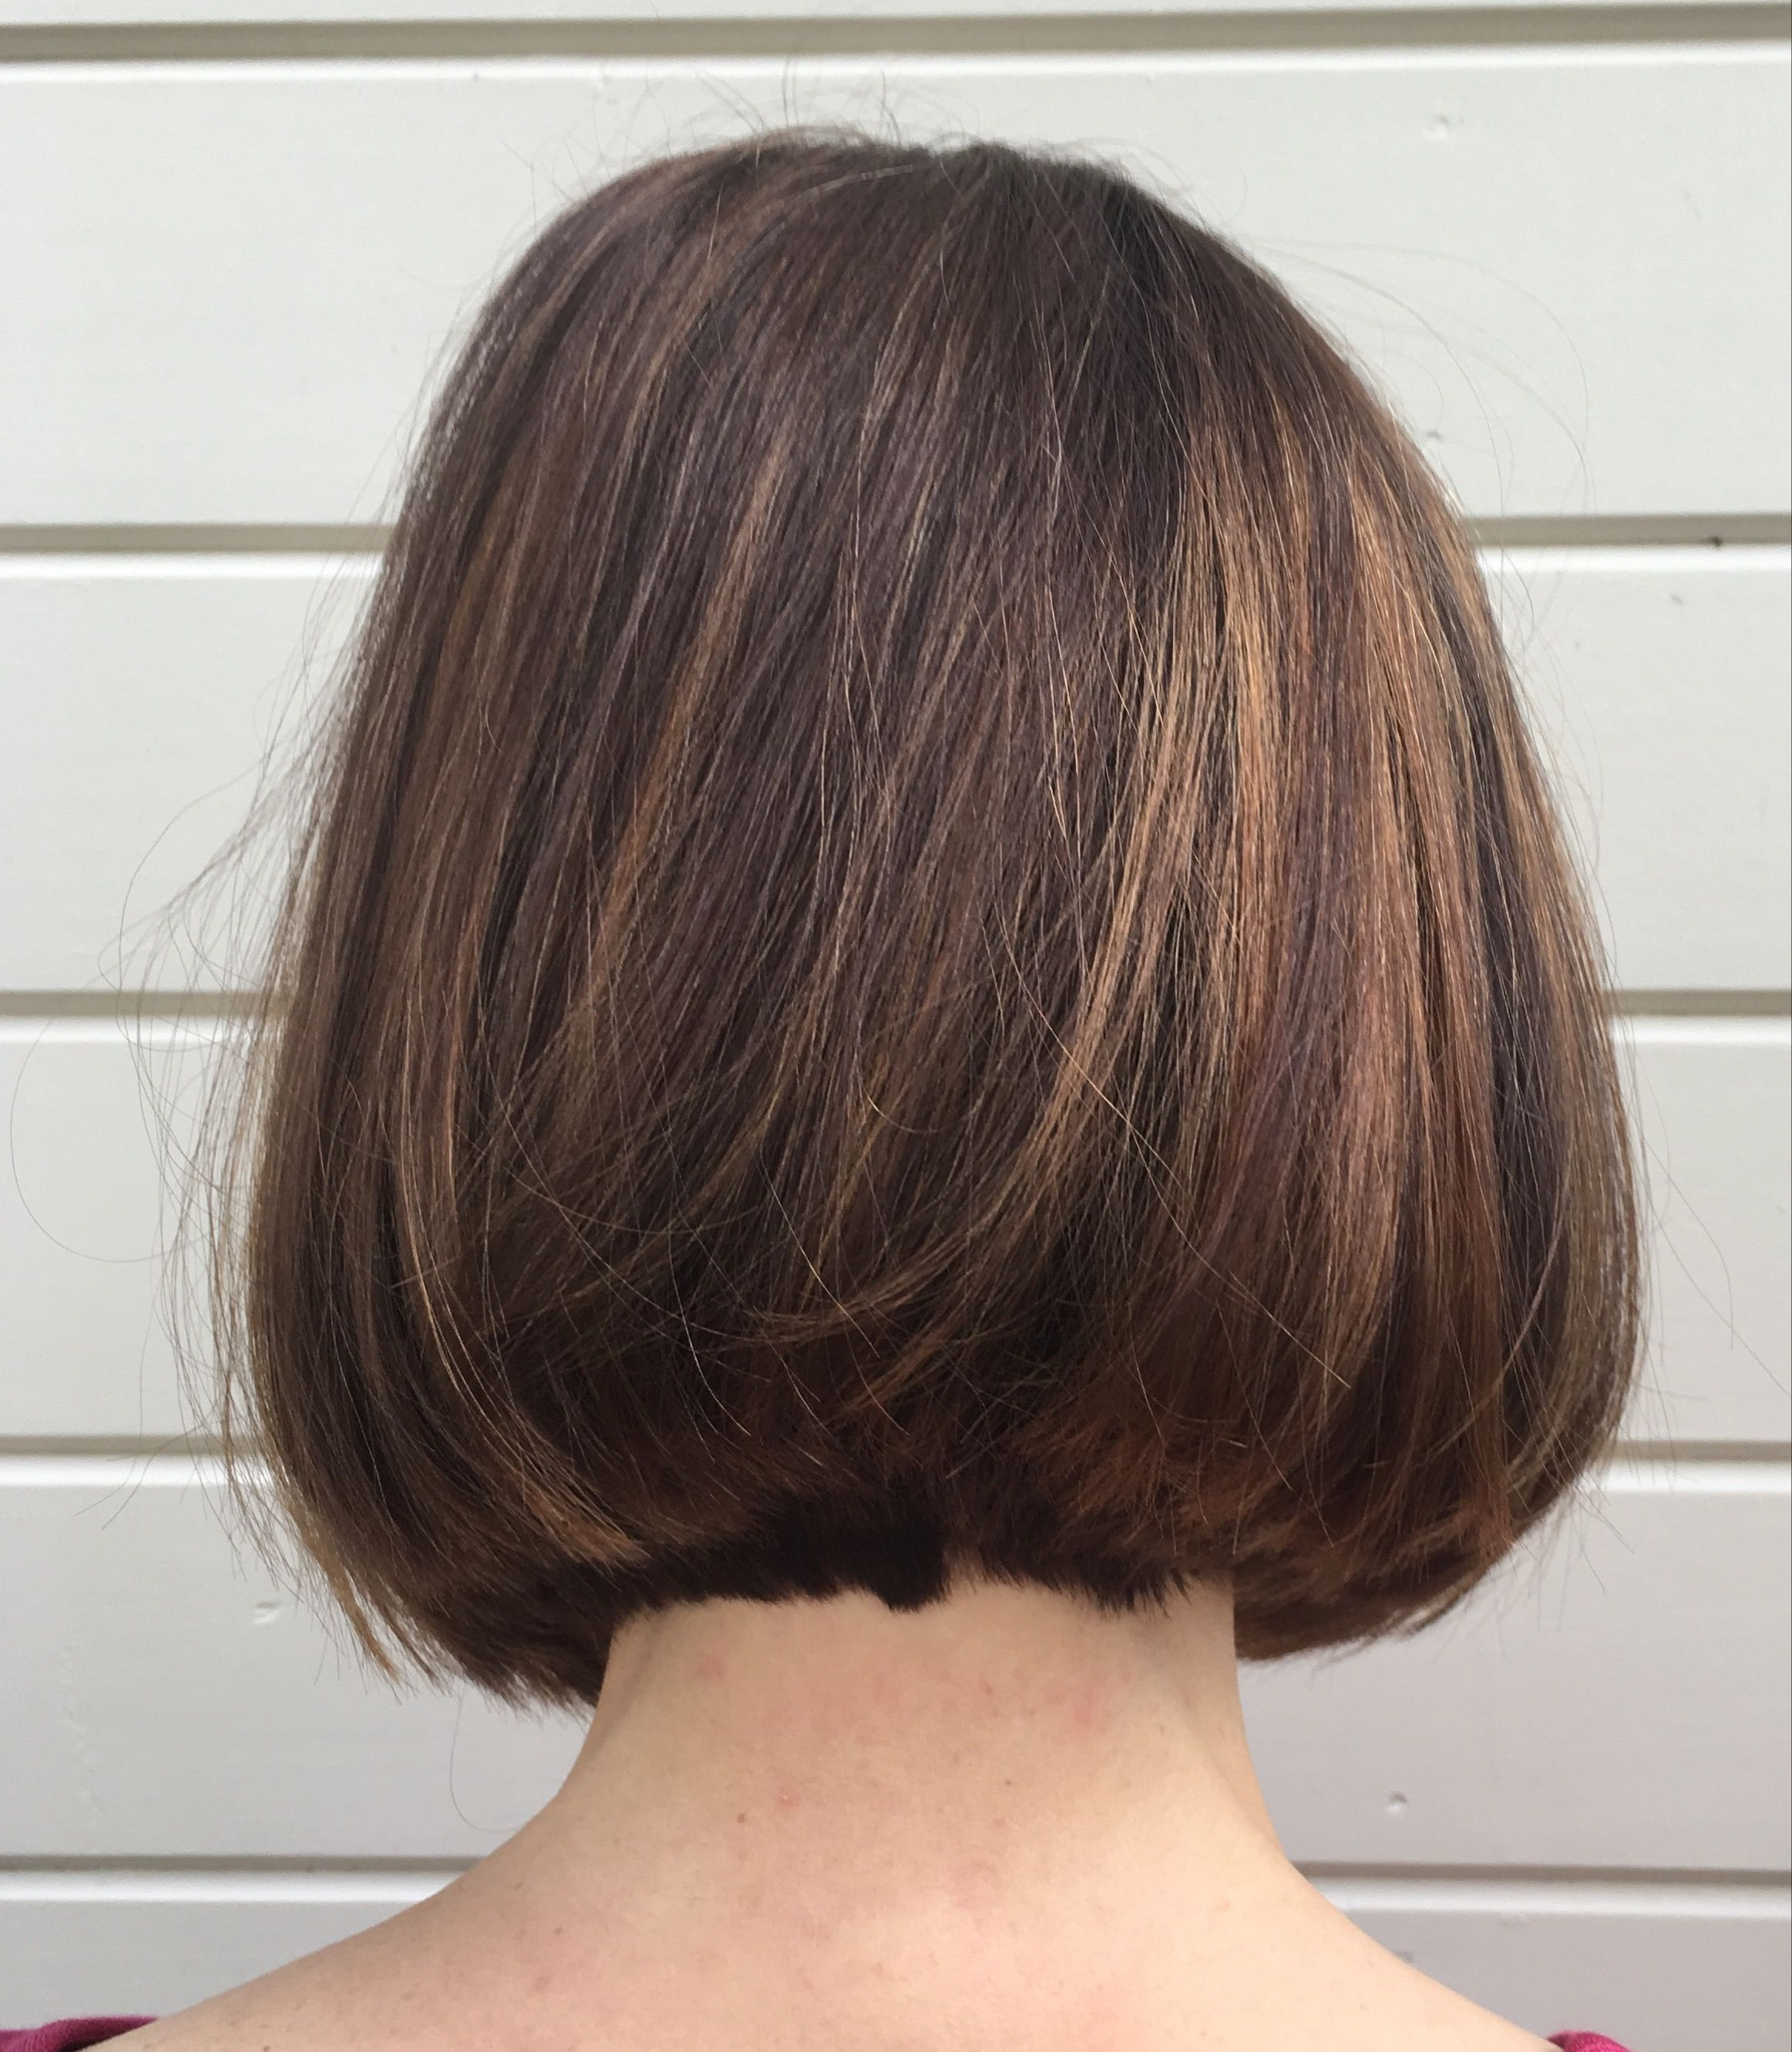 Rich dimensional brown hair accented with different tones of copper